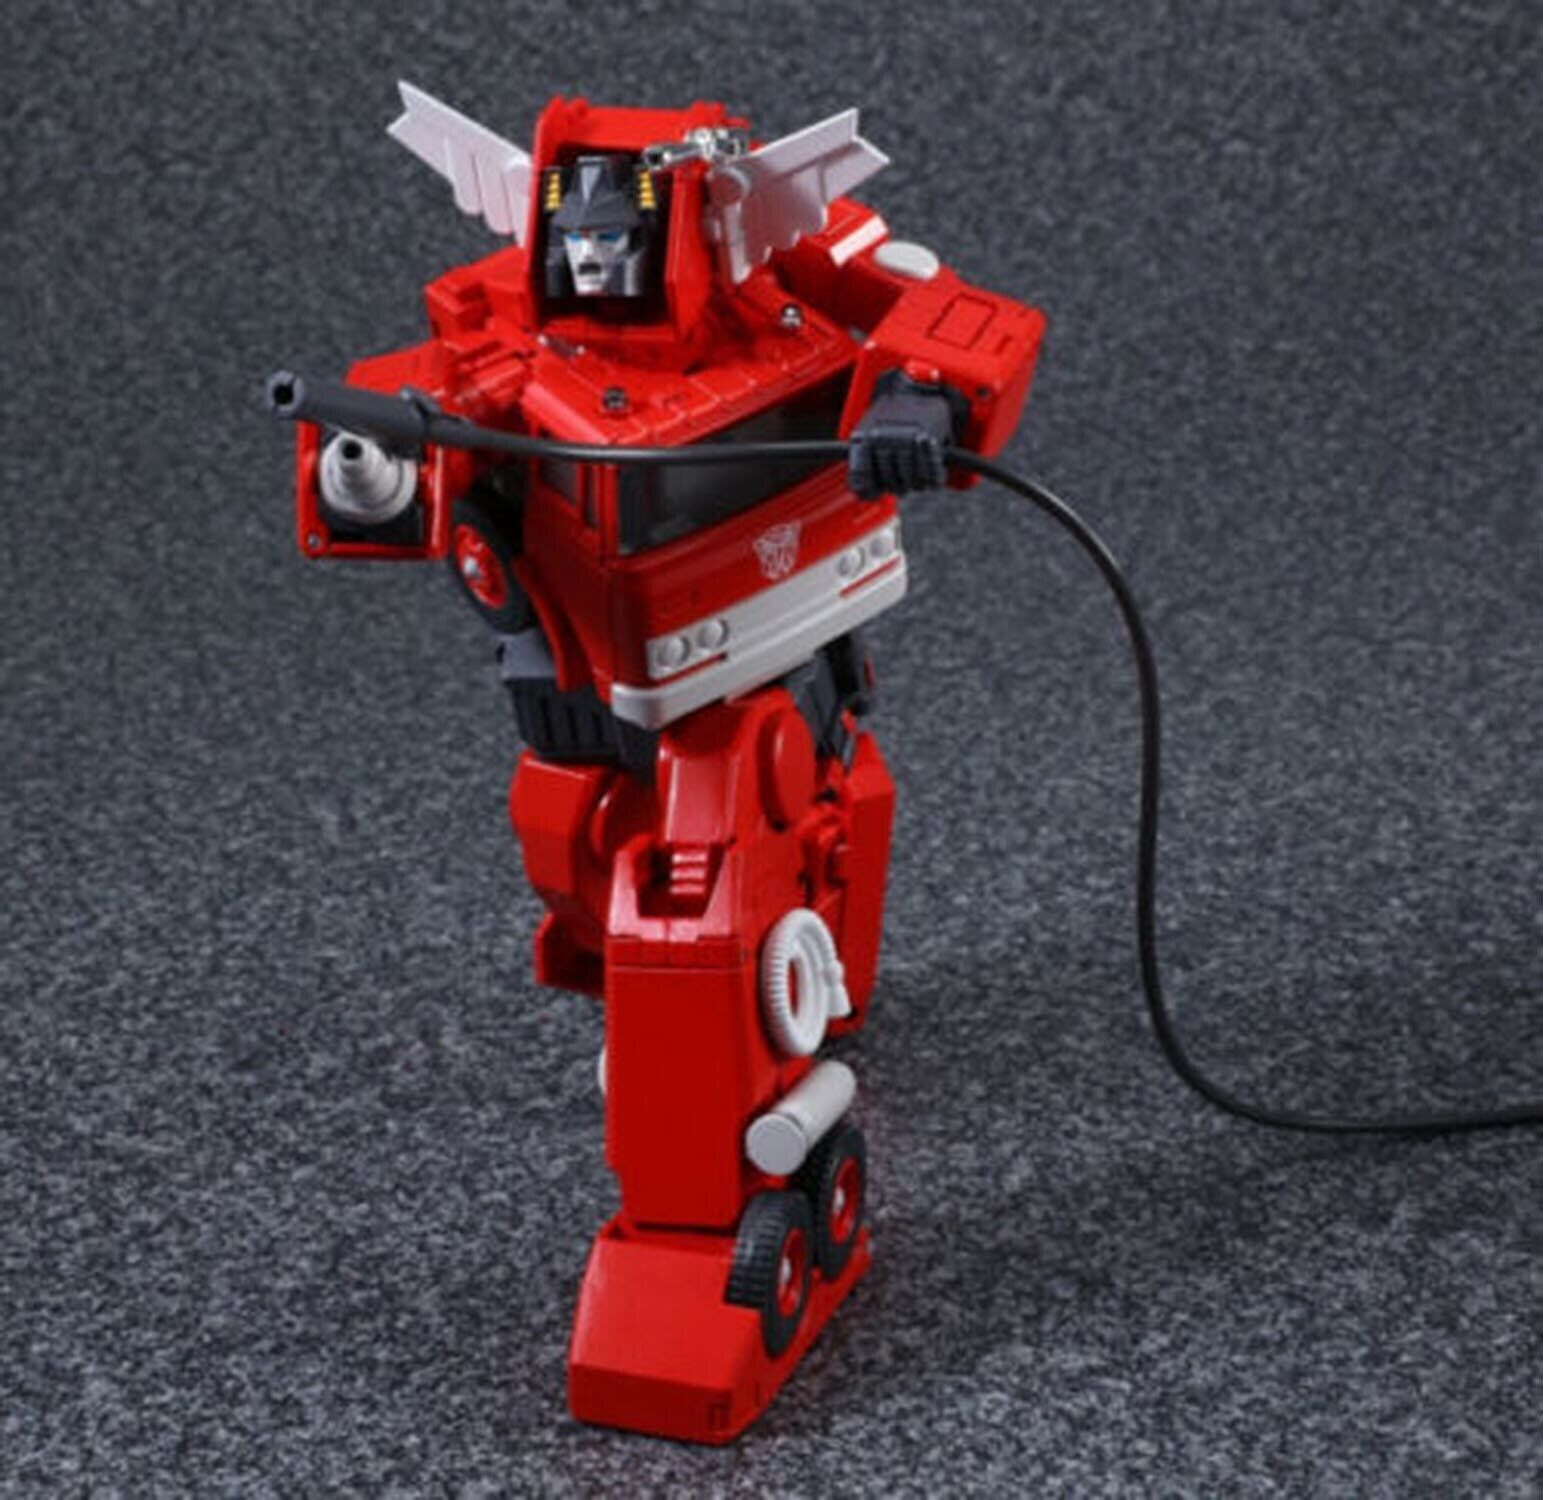 Transformers Masterpiece MP-33 MP33 INFERNO Autobots Kids Gift Toys Cars Robot